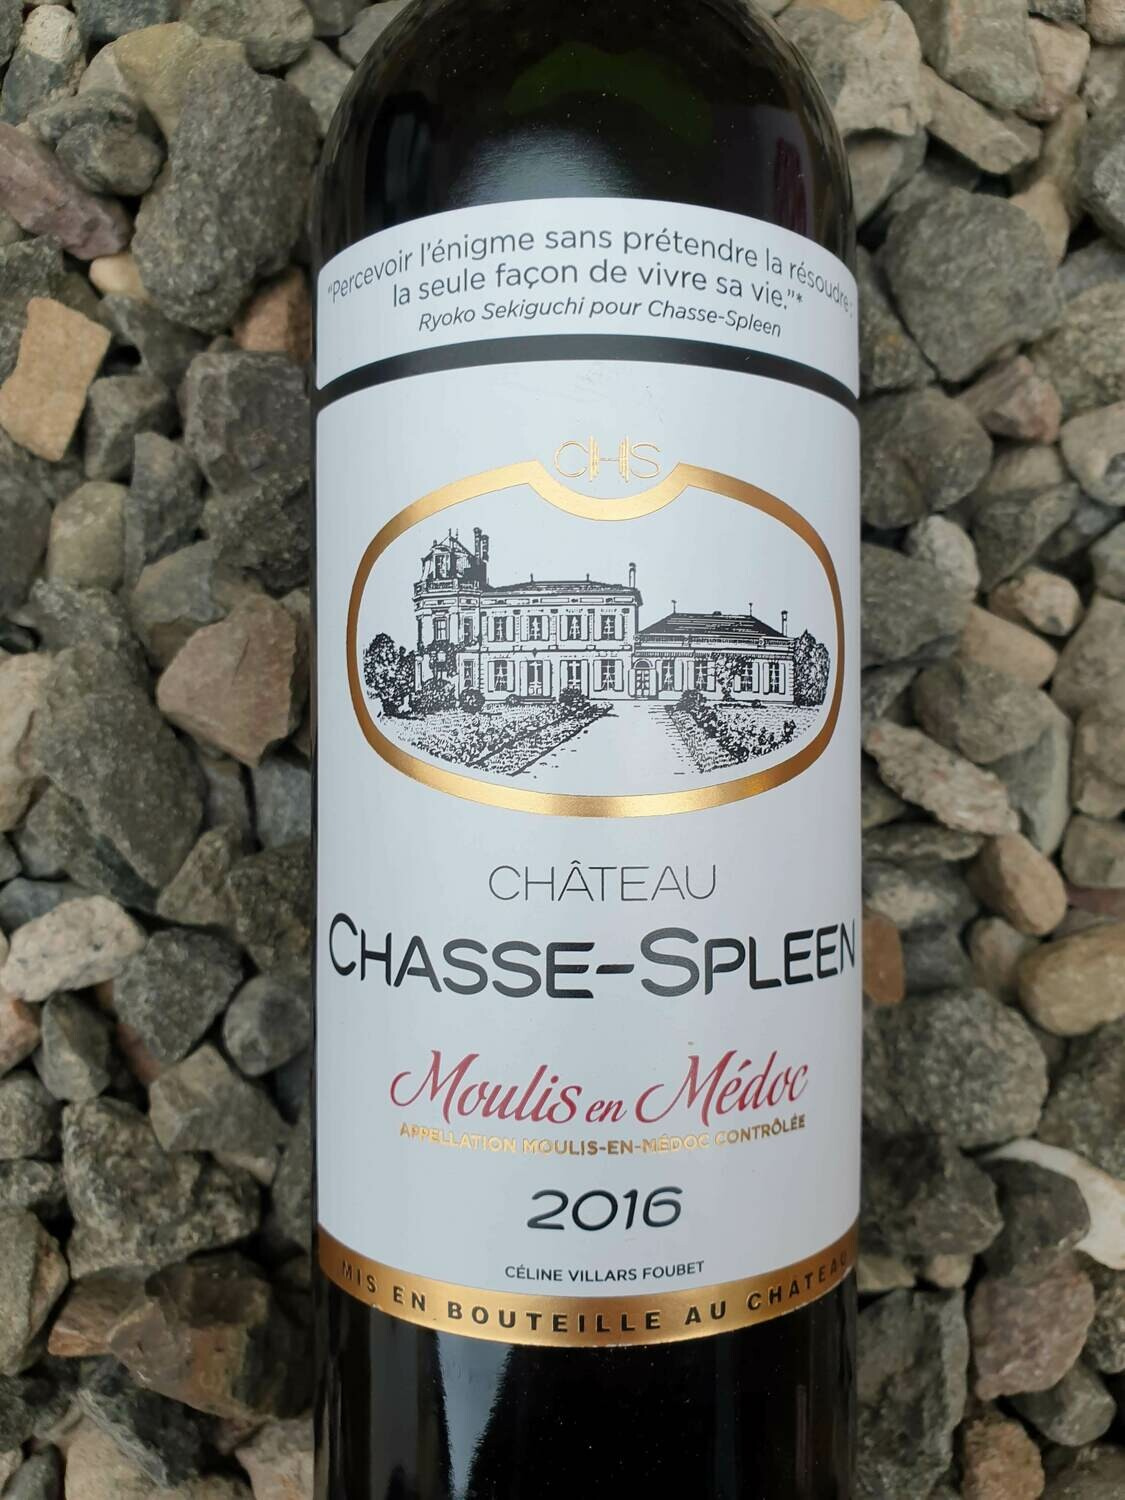 Chateau Chasse Spleen 2016 Moulis